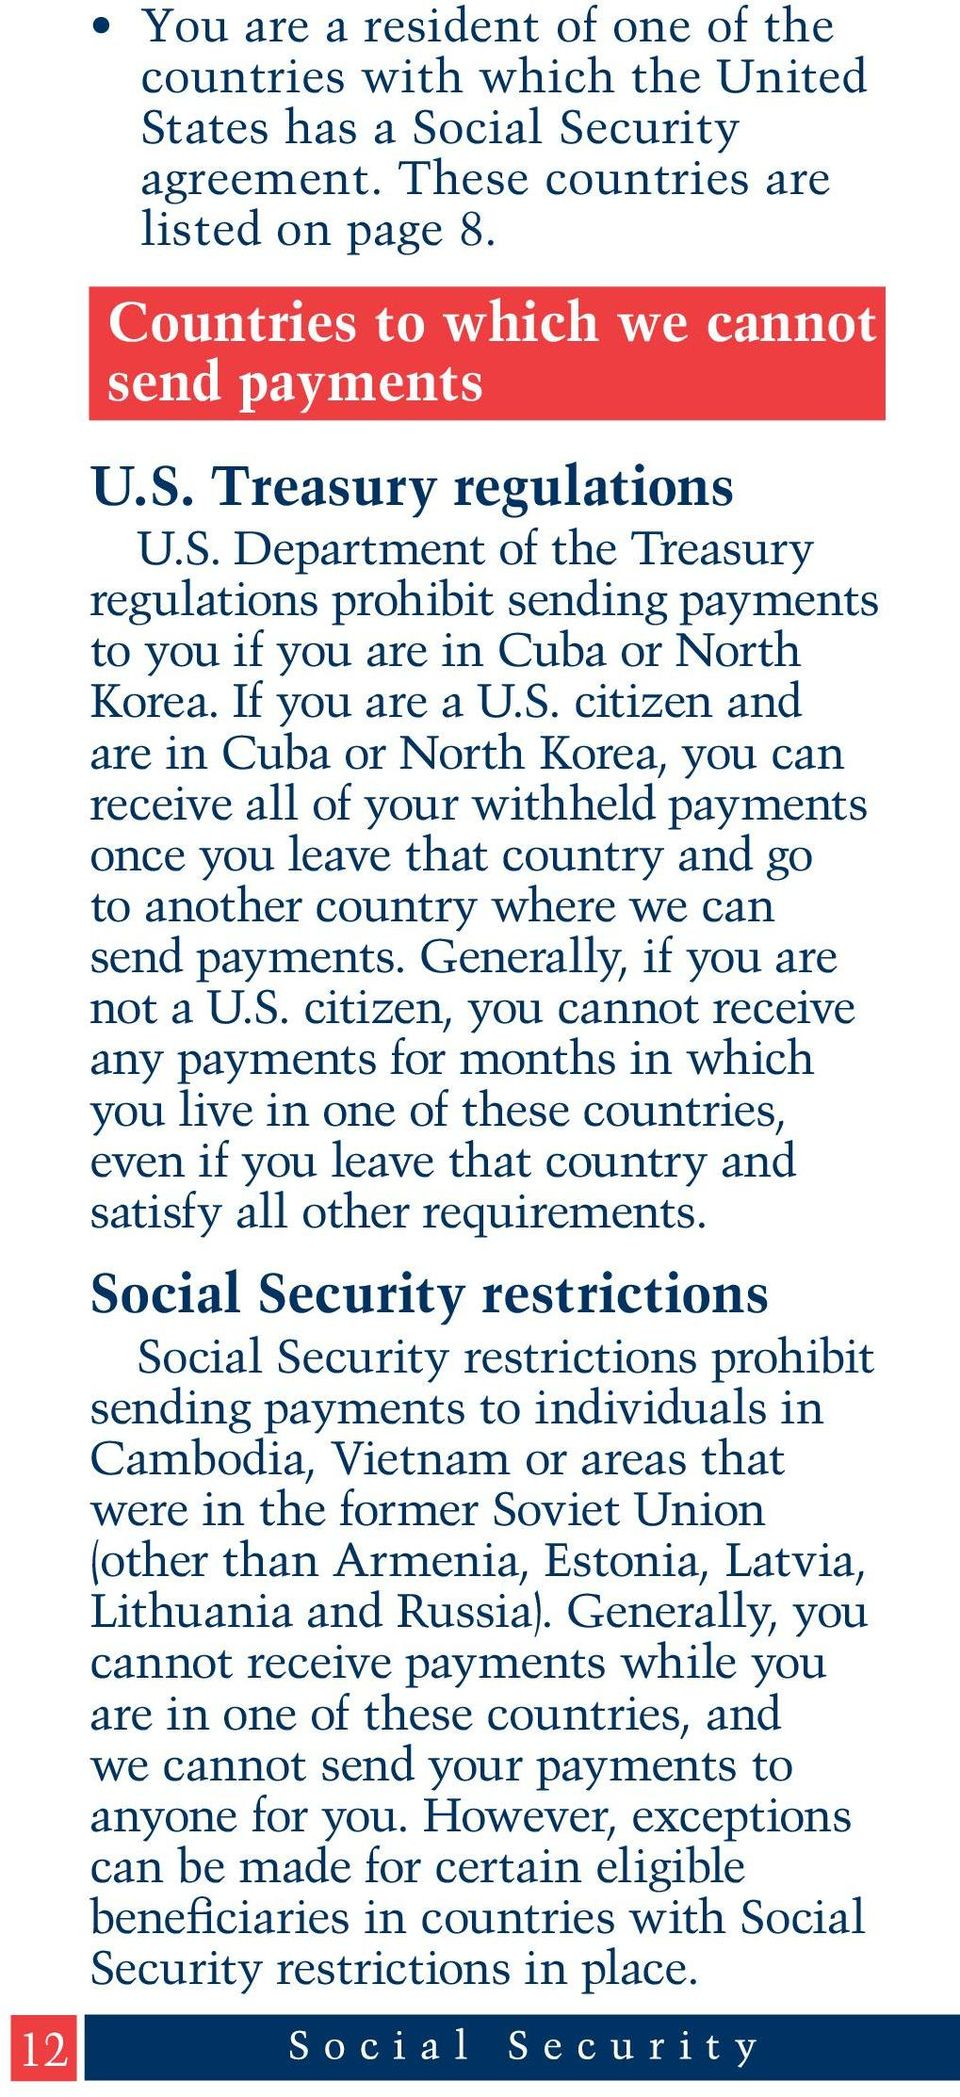 Generally, if you are not a U.S. citizen, you cannot receive any payments for months in which you live in one of these countries, even if you leave that country and satisfy all other requirements.